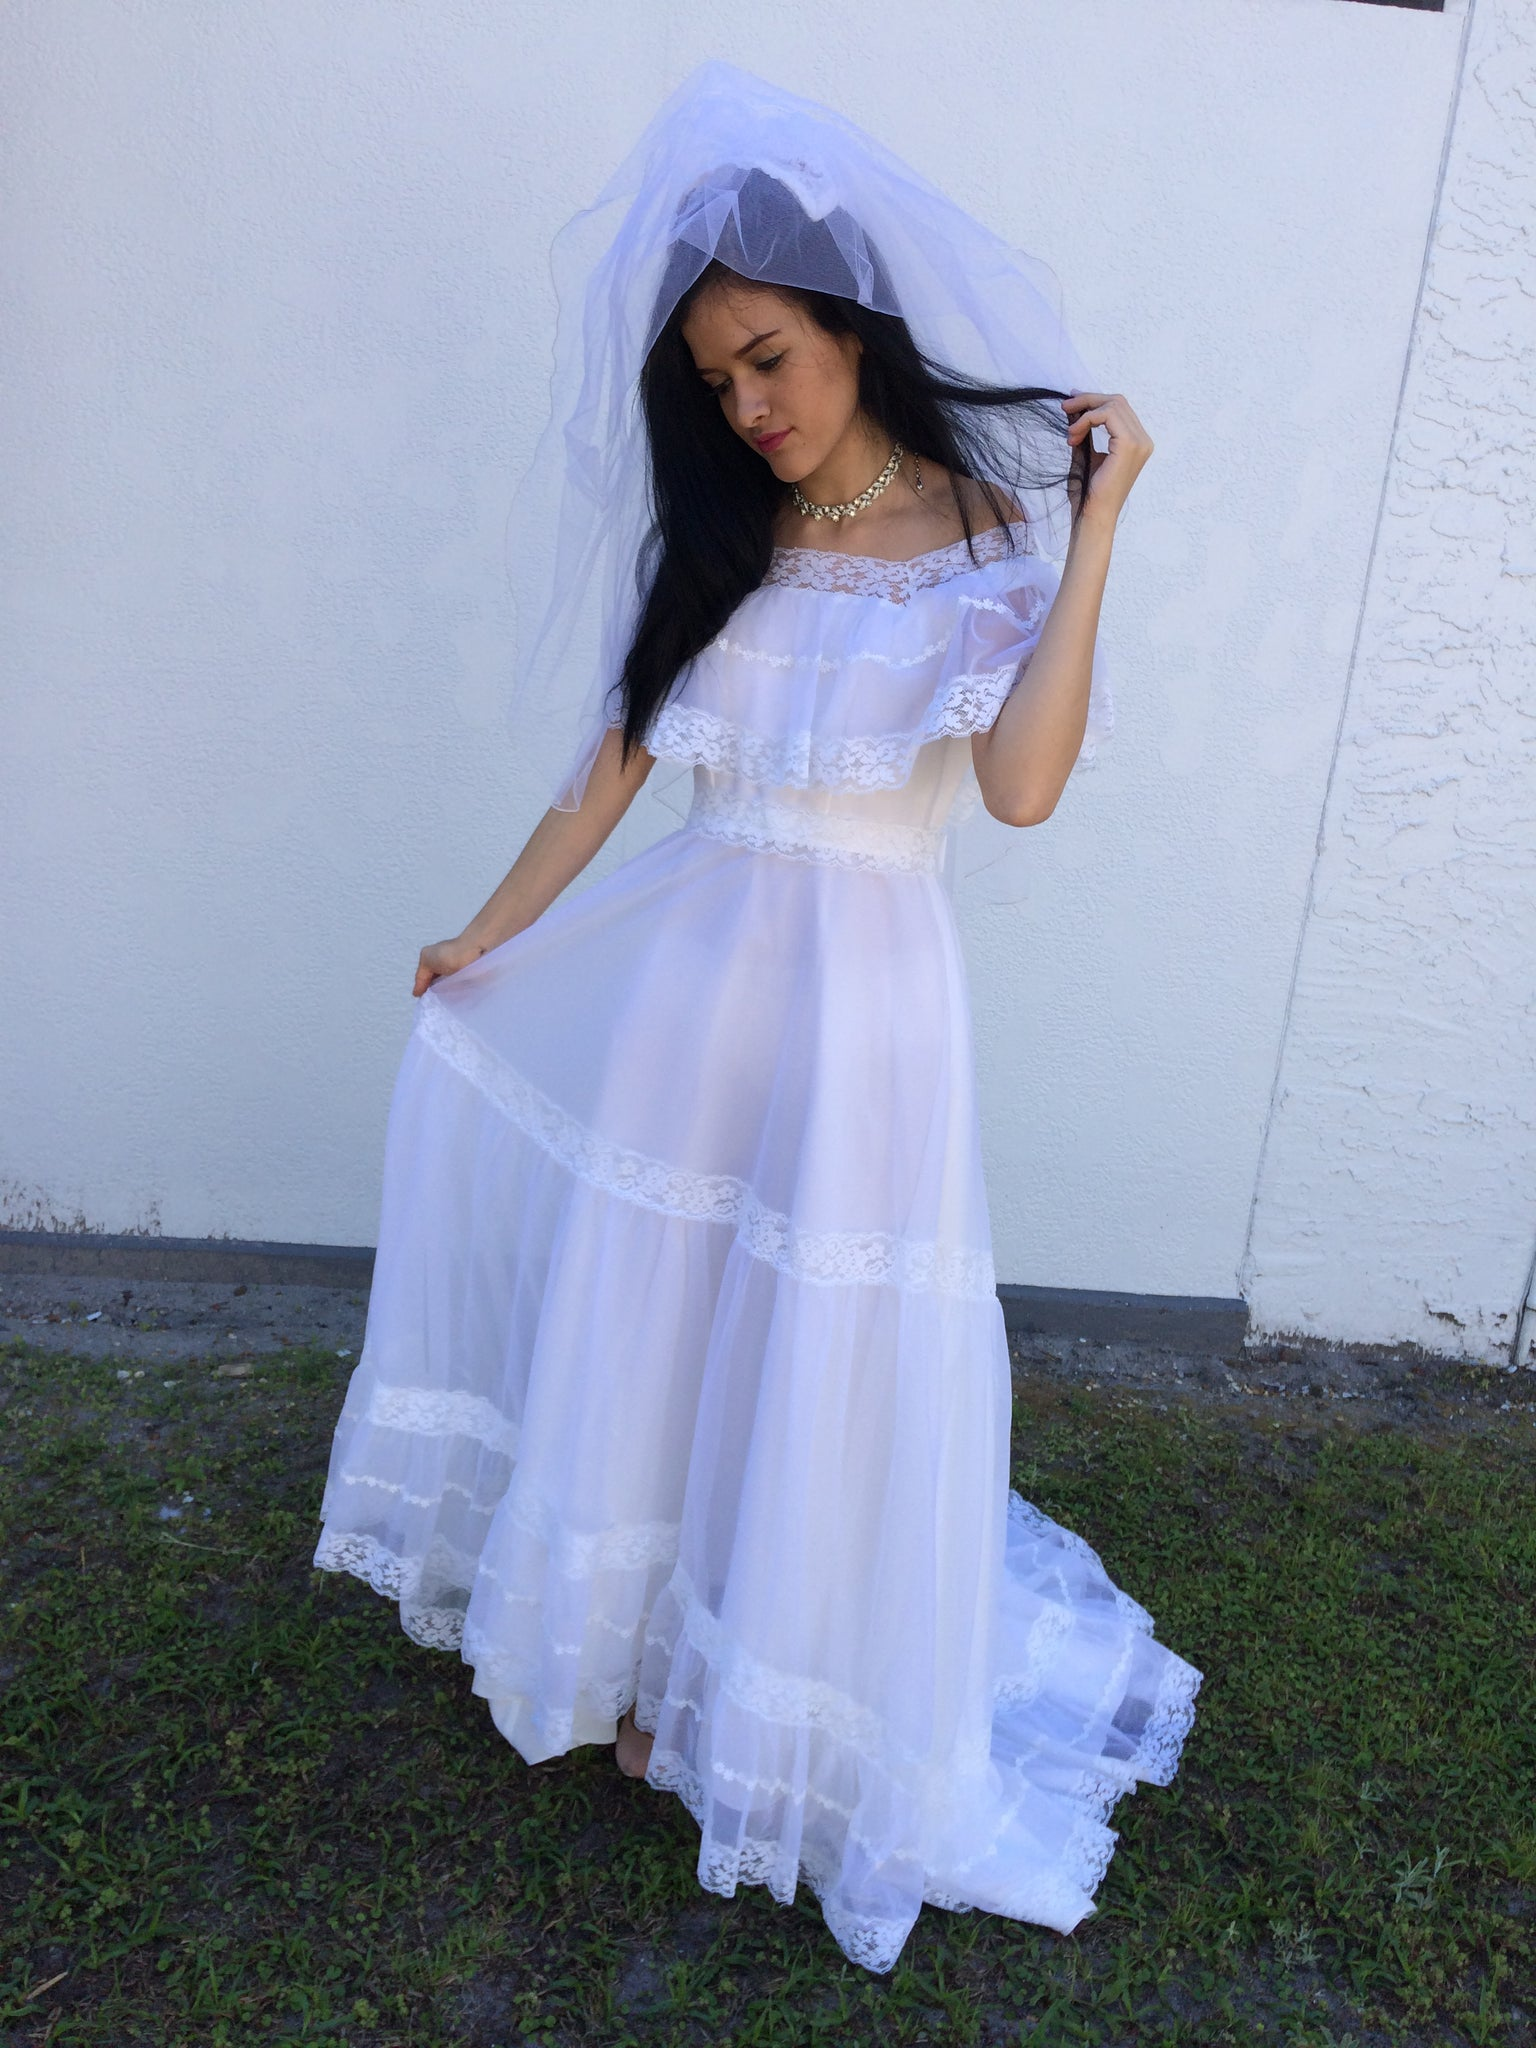 1950 S Vintage Wedding Dresses.1950 S Vintage Chiffon Lace Wedding Gown Dress Size Small